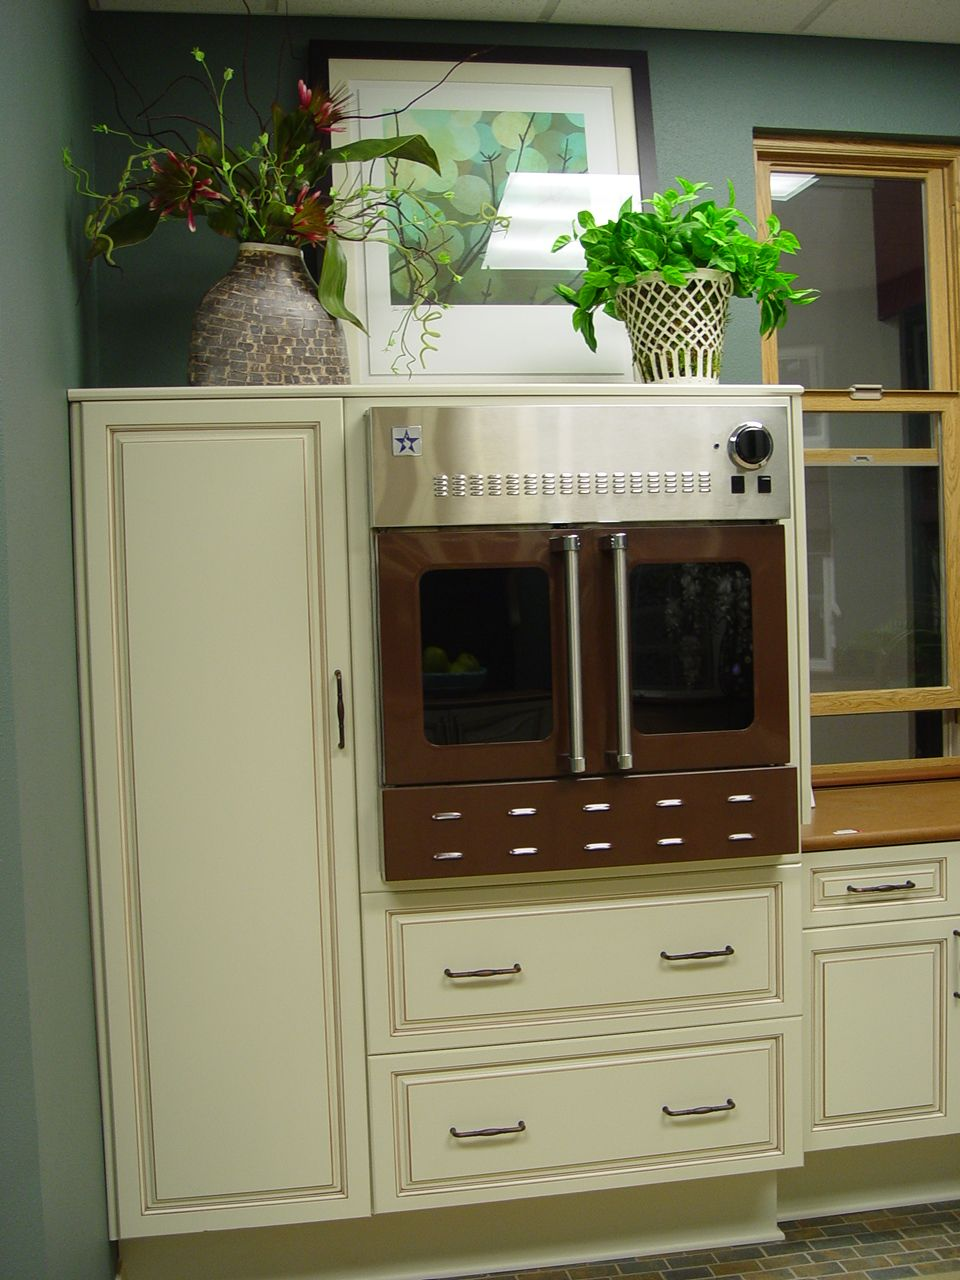 Inset ovens allow safe access. This is a Blue Star in KitchenCraft cabinetry